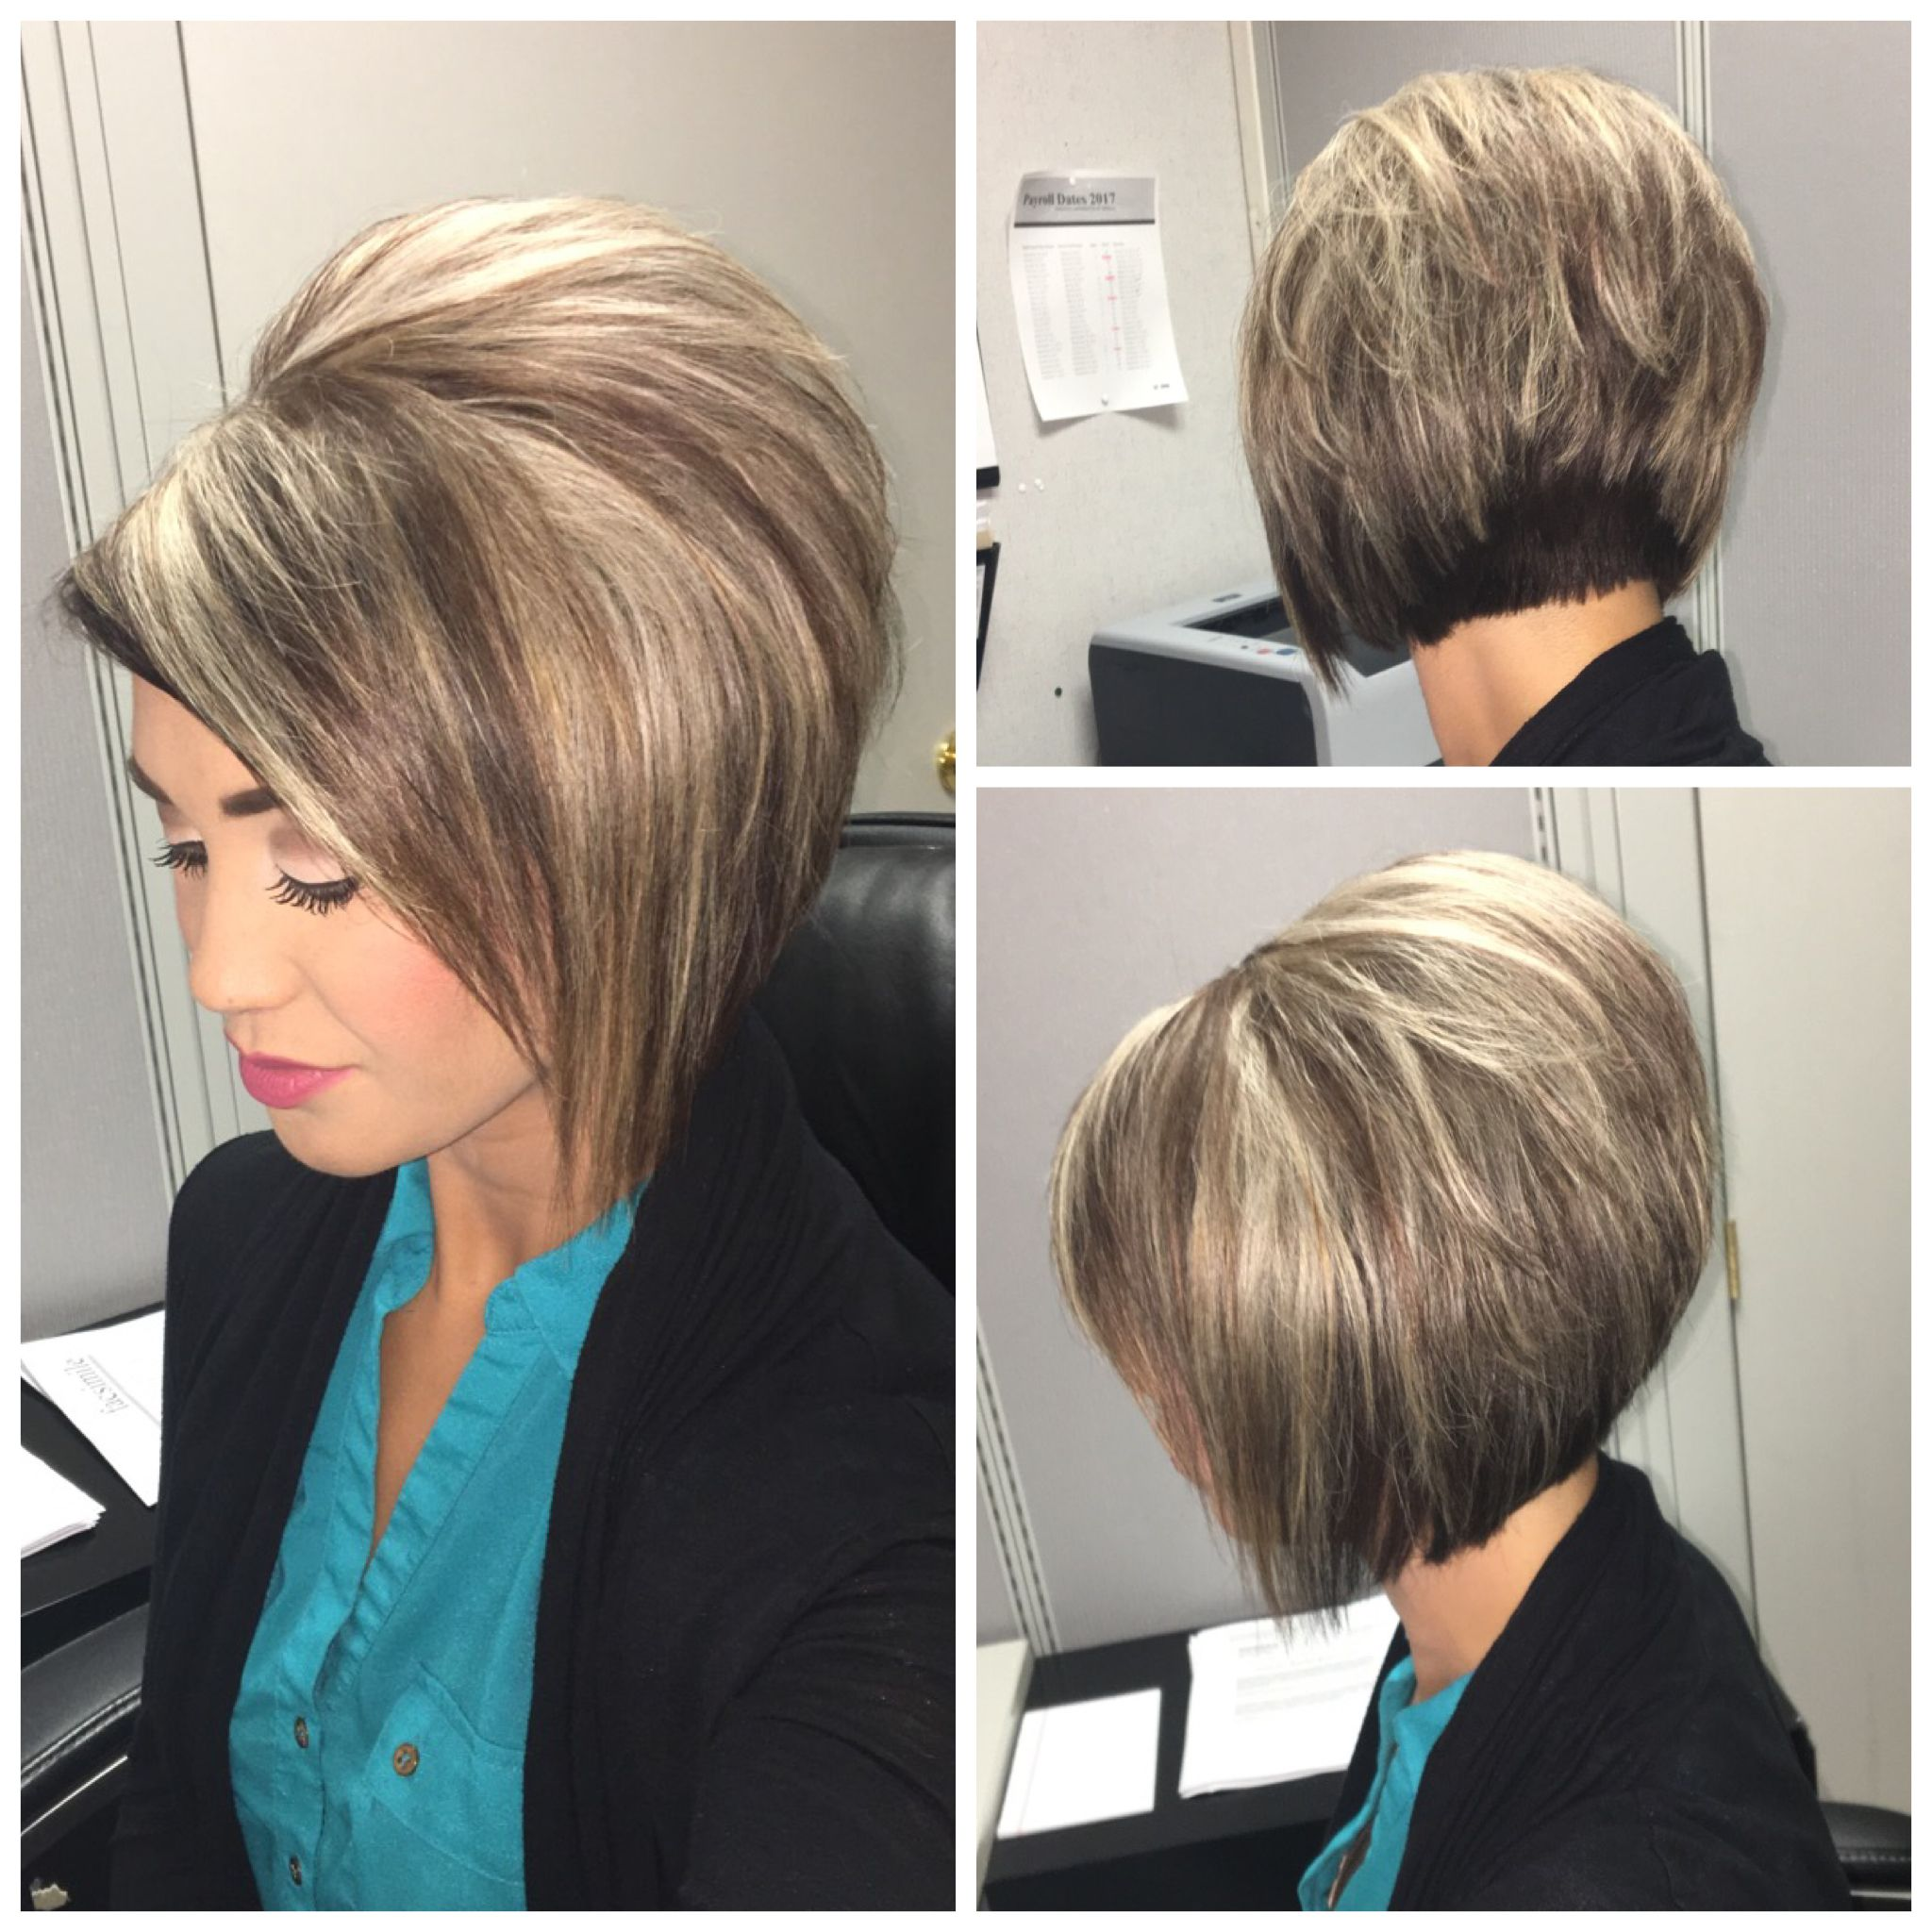 Stacked inverted bob | Hair | Pinterest | Stacked inverted bob ...